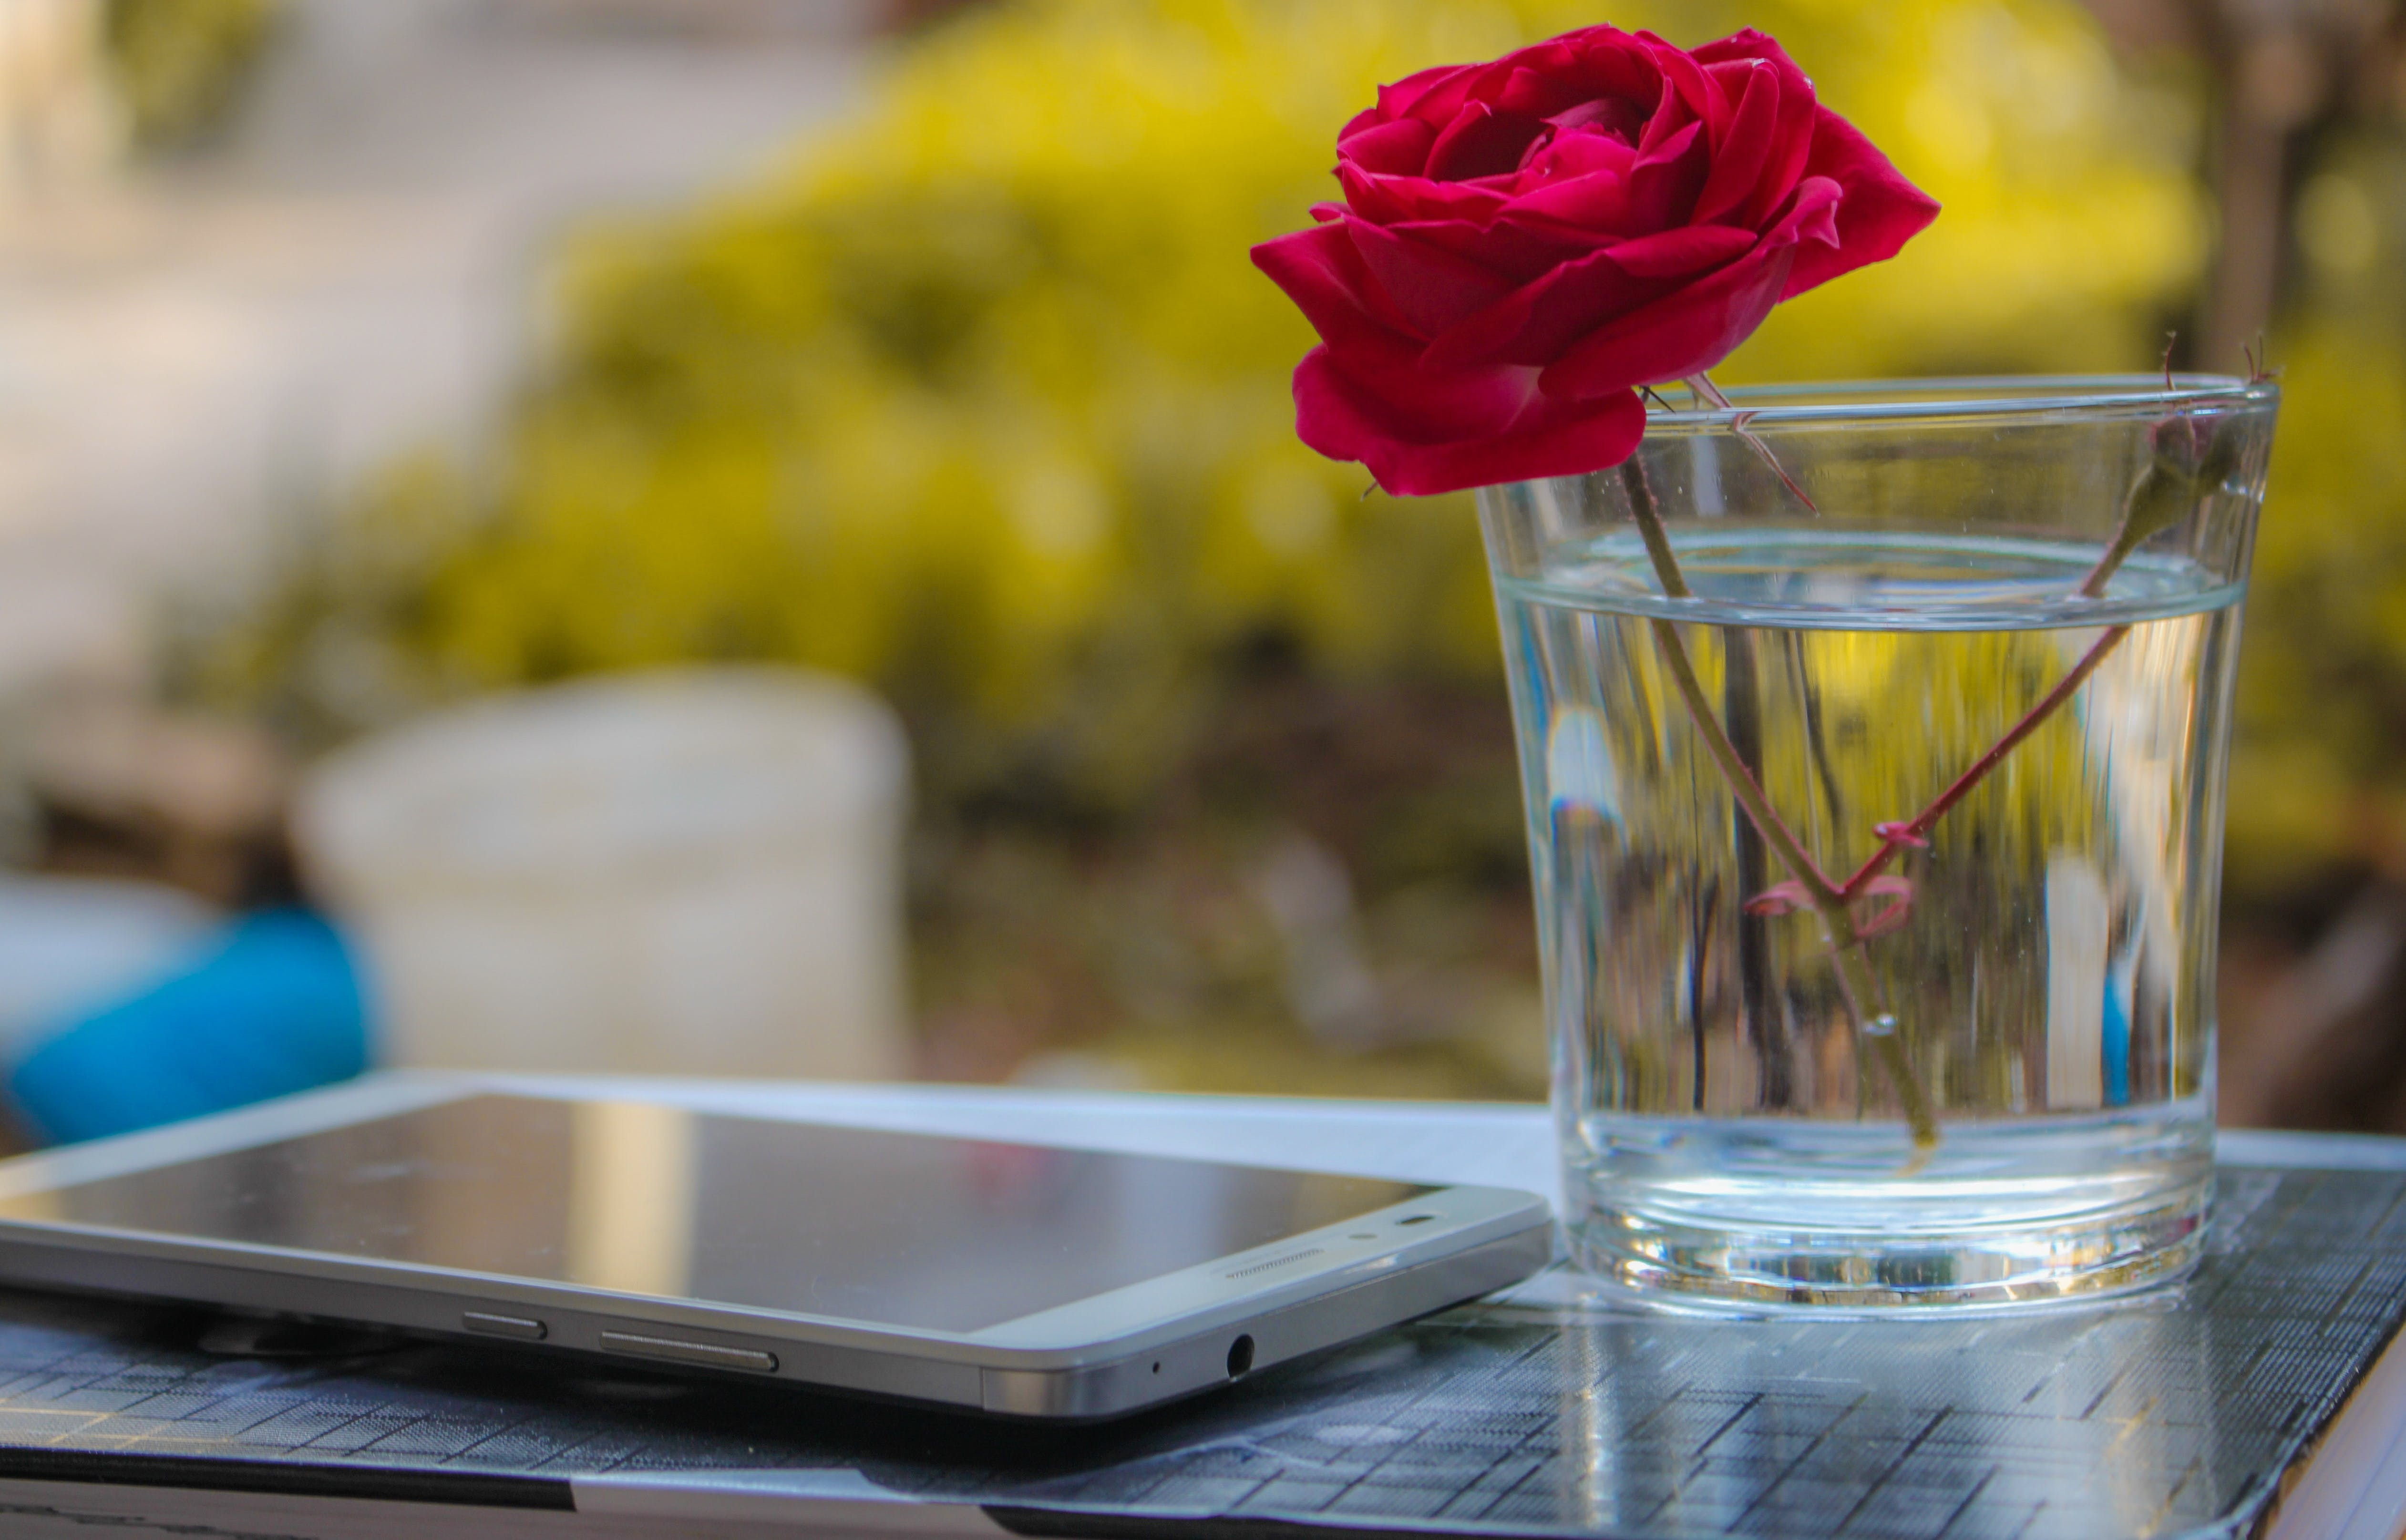 Red Rose In Clear Drinking Glass With Water Beside White Smartphone